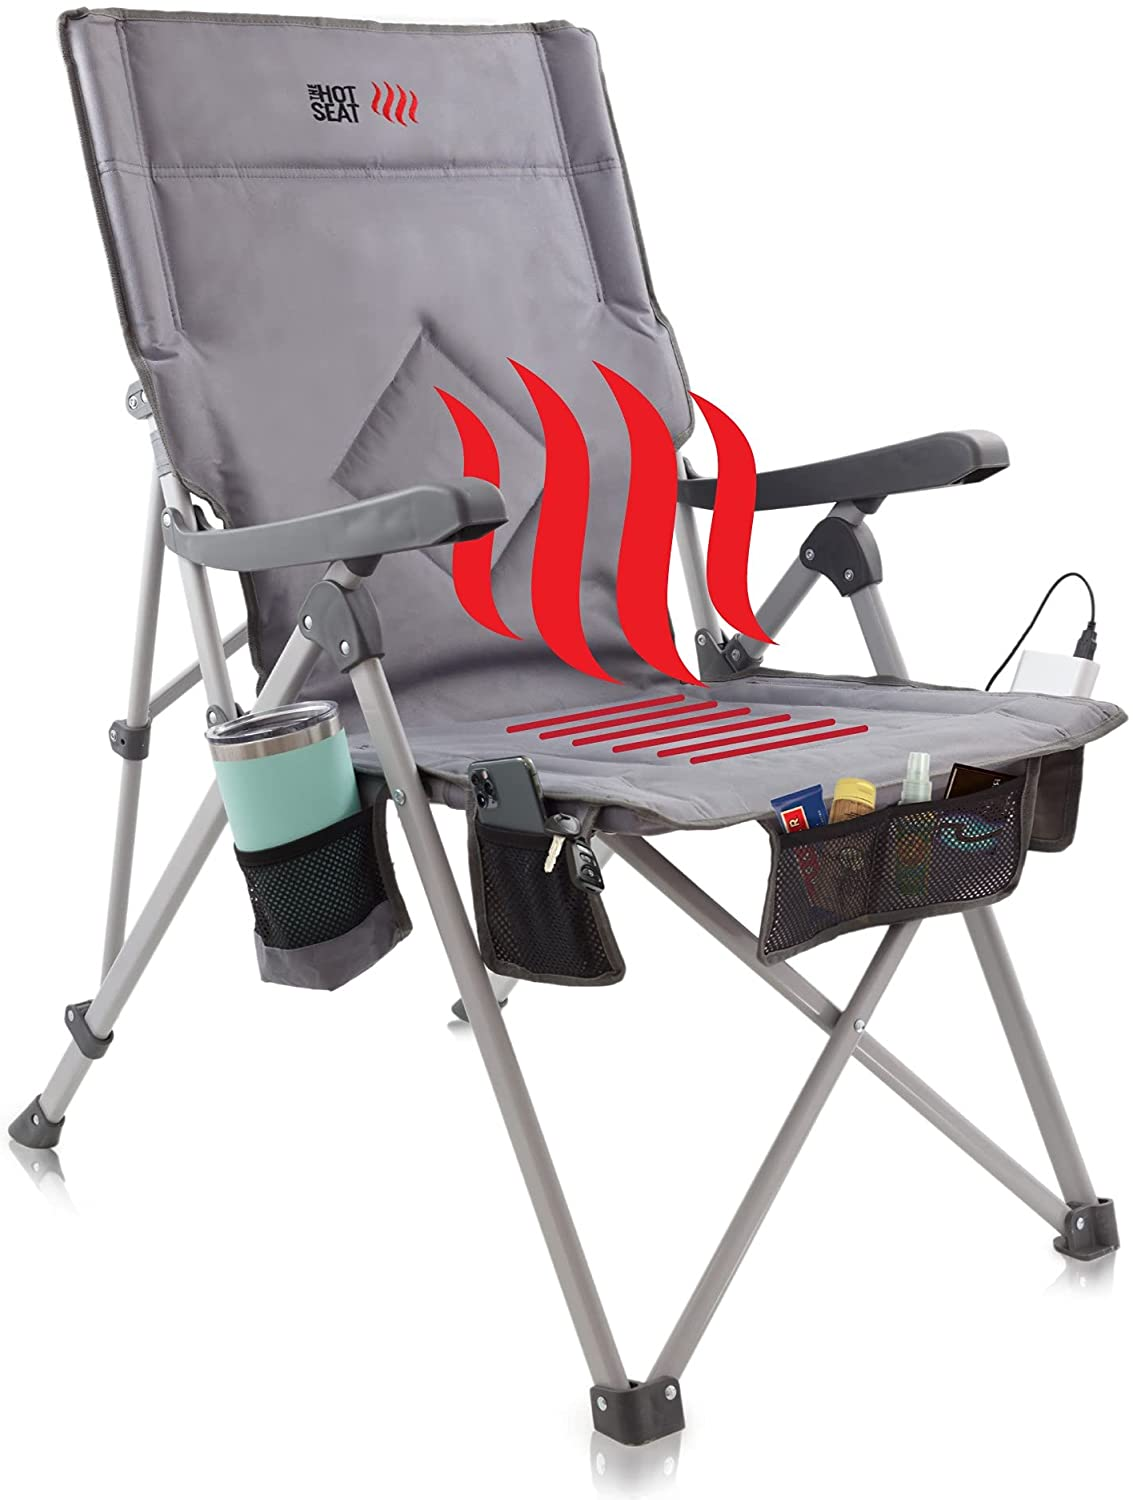 heated camping chair